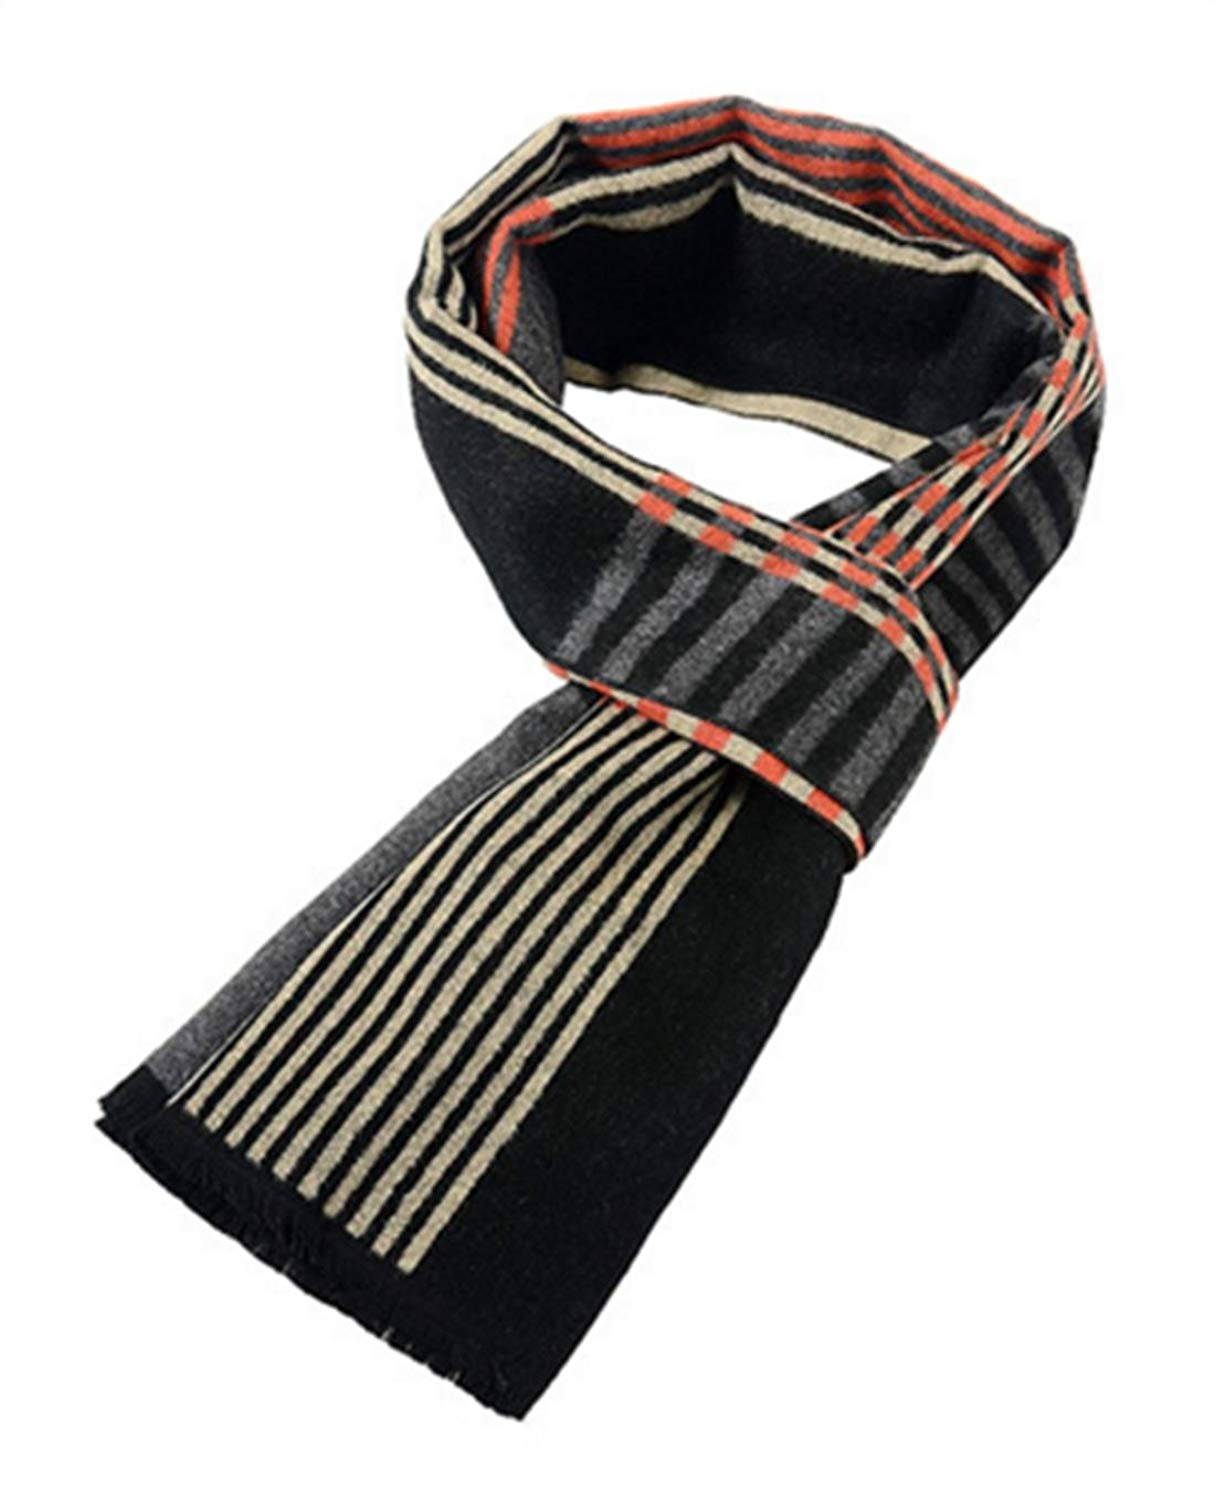 New autumn and winter men 's scarf imitation silk brushed warm scarf fashion winter scarf scarf scarf , 180cm